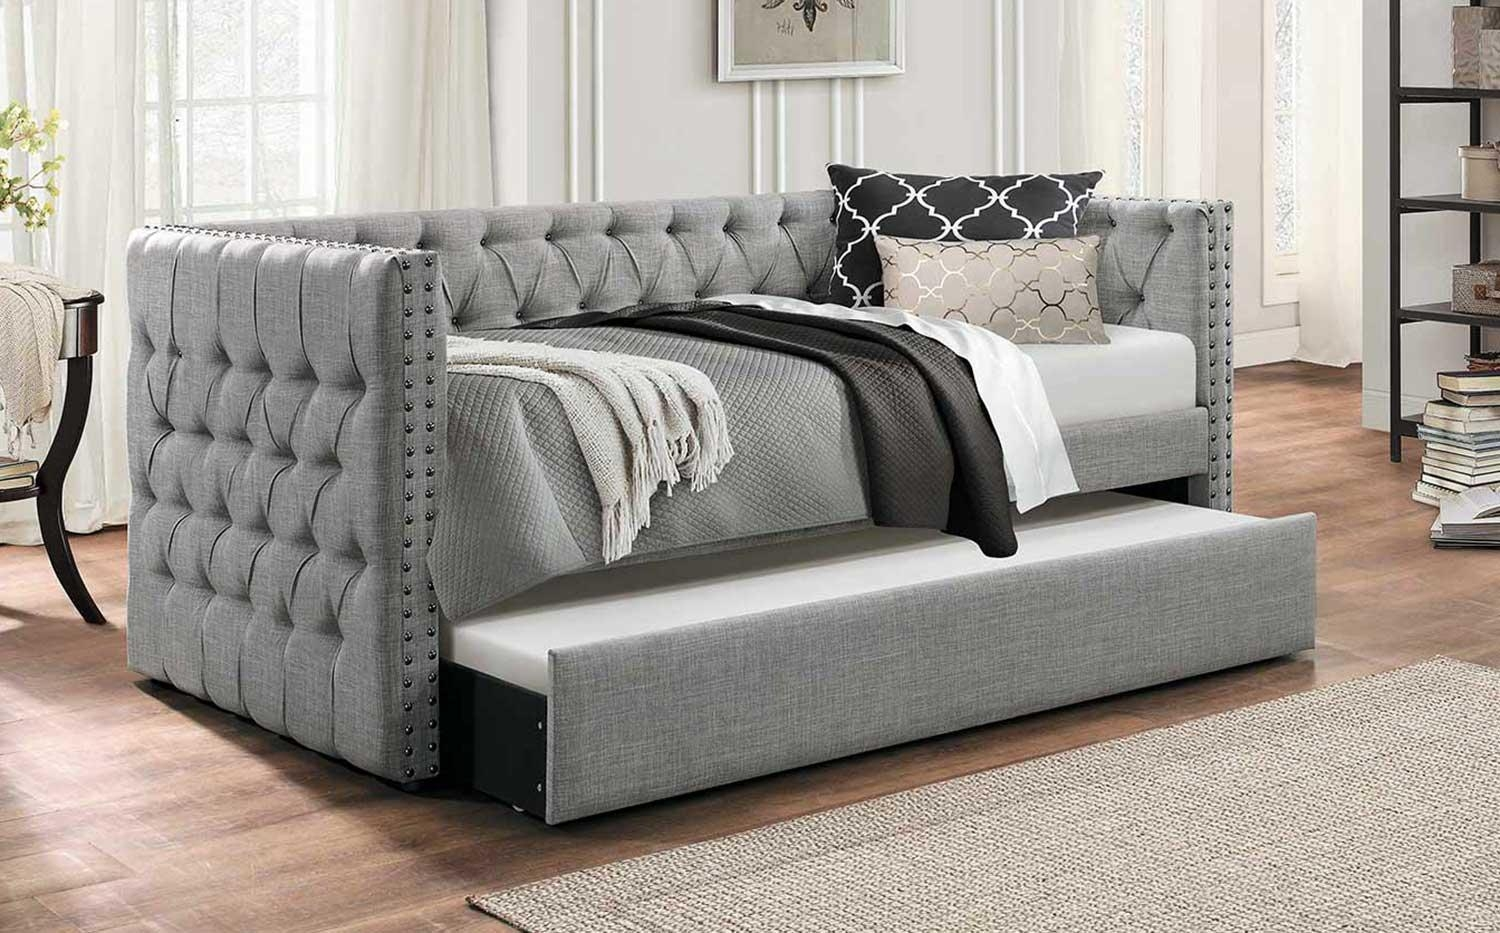 Daybed And Futon | Homelegancefurnitureonline Intended For Sofas Daybed With Trundle (Image 2 of 20)